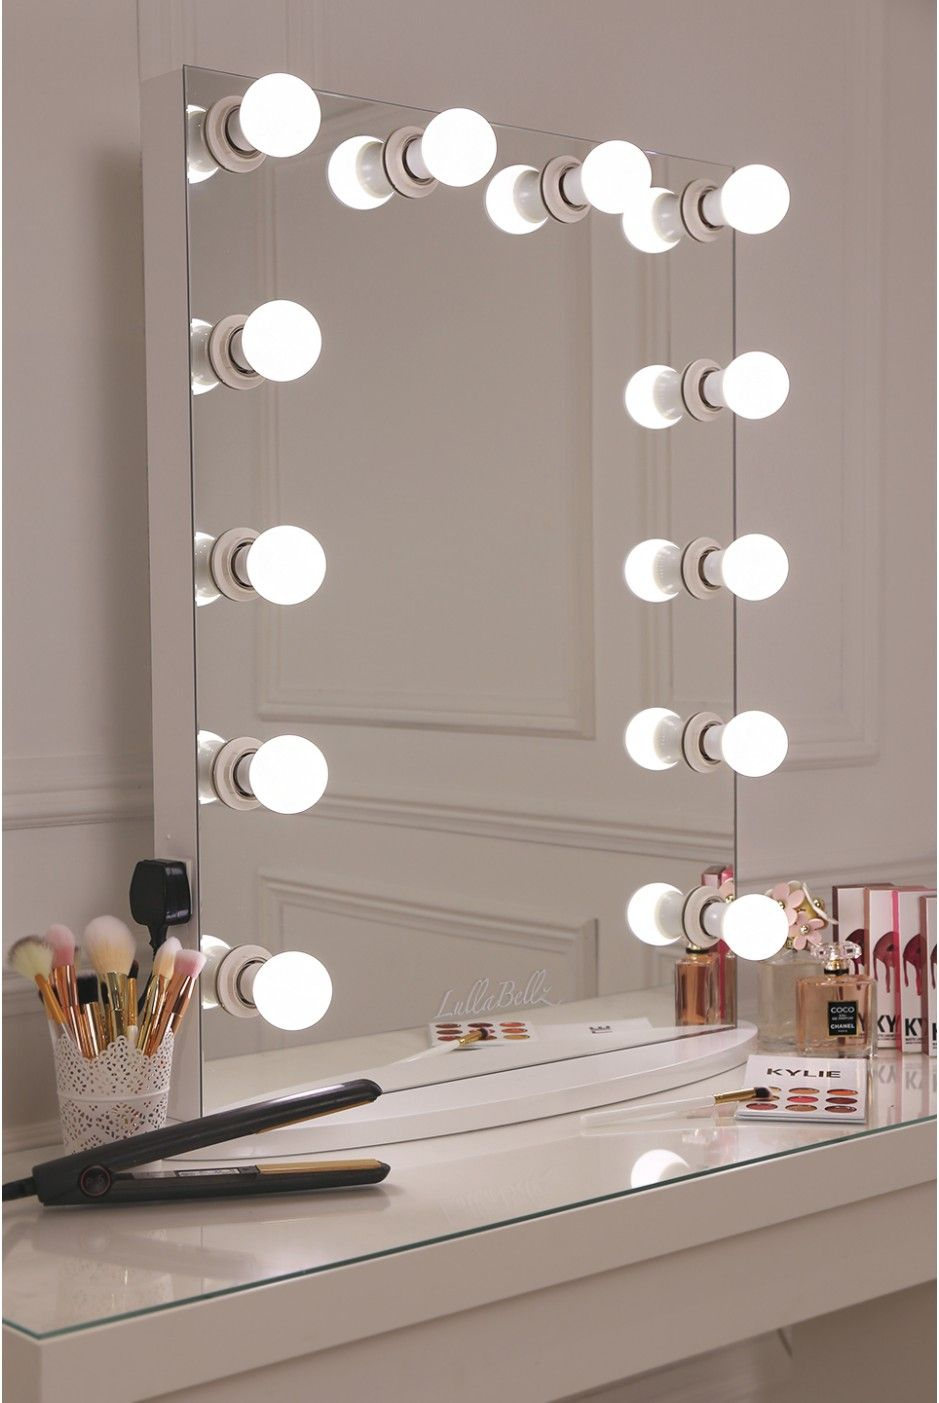 How To Make A Vanity Mirror With Lights Entrancing Hollywood Glow Vanity Mirror With Led Bulbs  Lullabellz  Anas